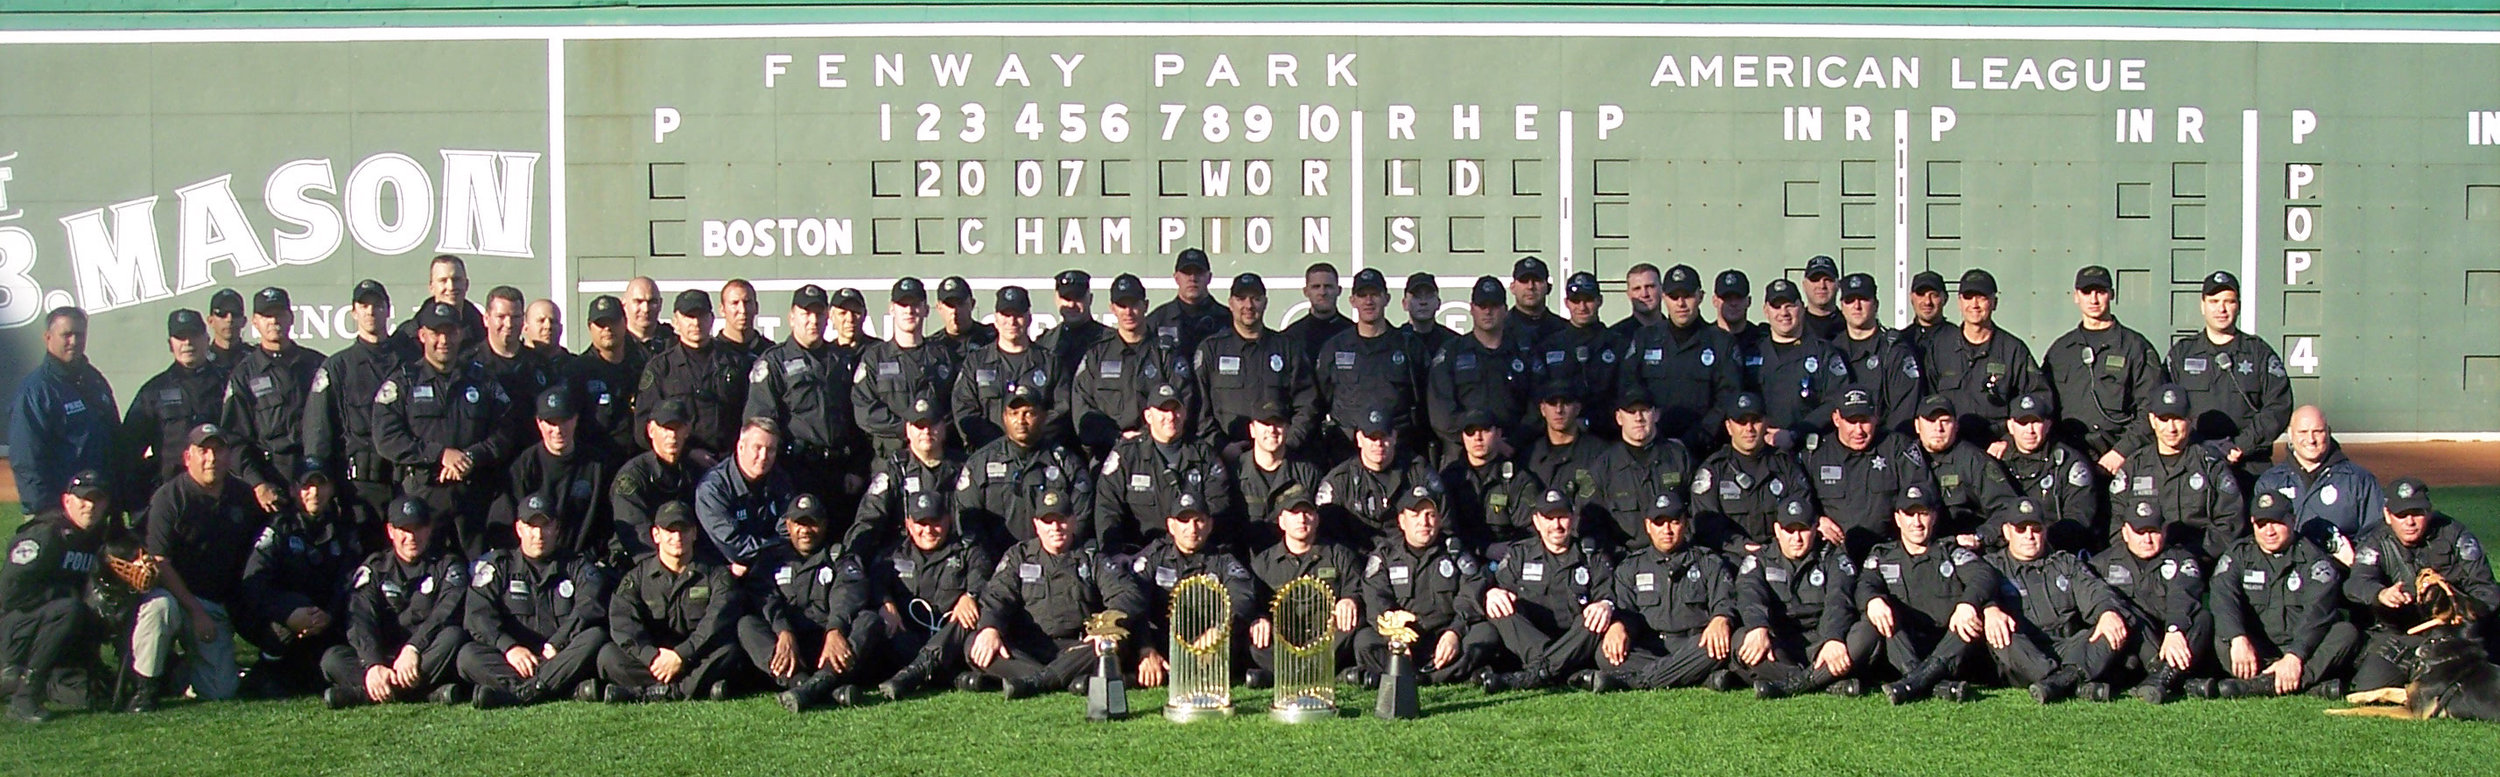 MetroLEC SWAT Team after the 2007 World Series